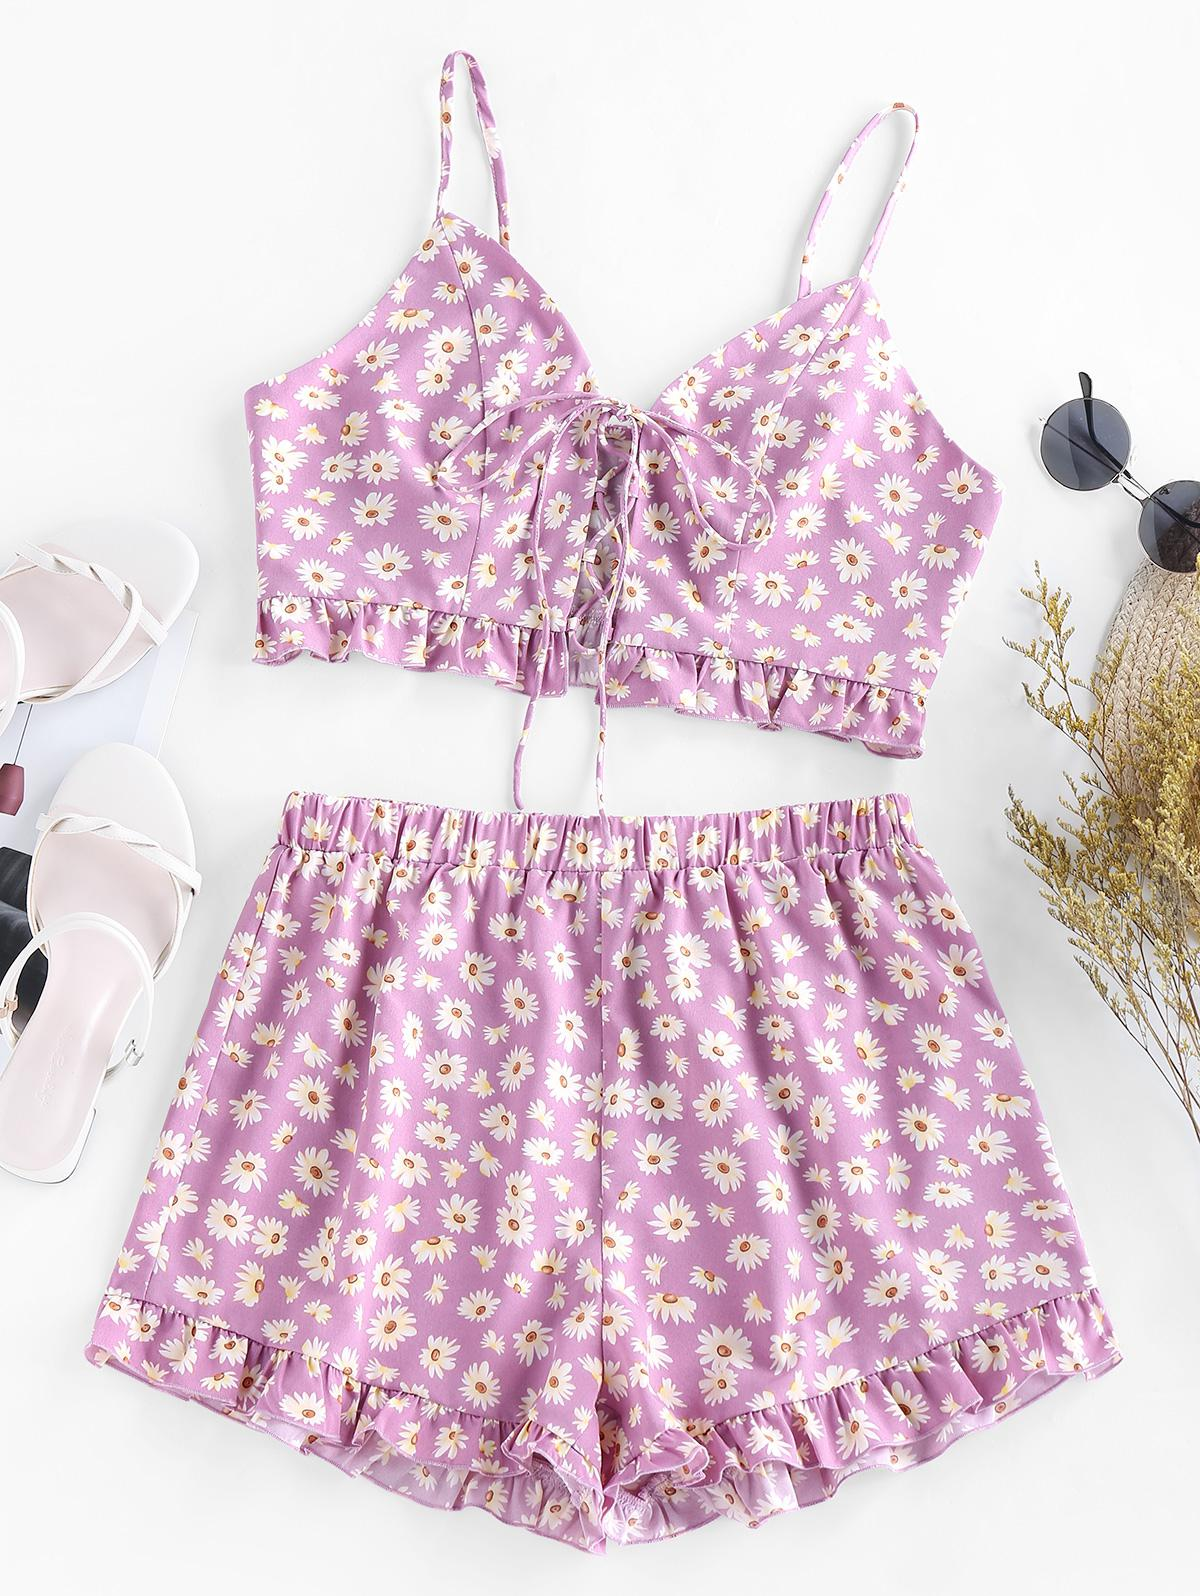 ZAFUL Daisy Floral Lace Up Ruffle Cami Two Piece Set